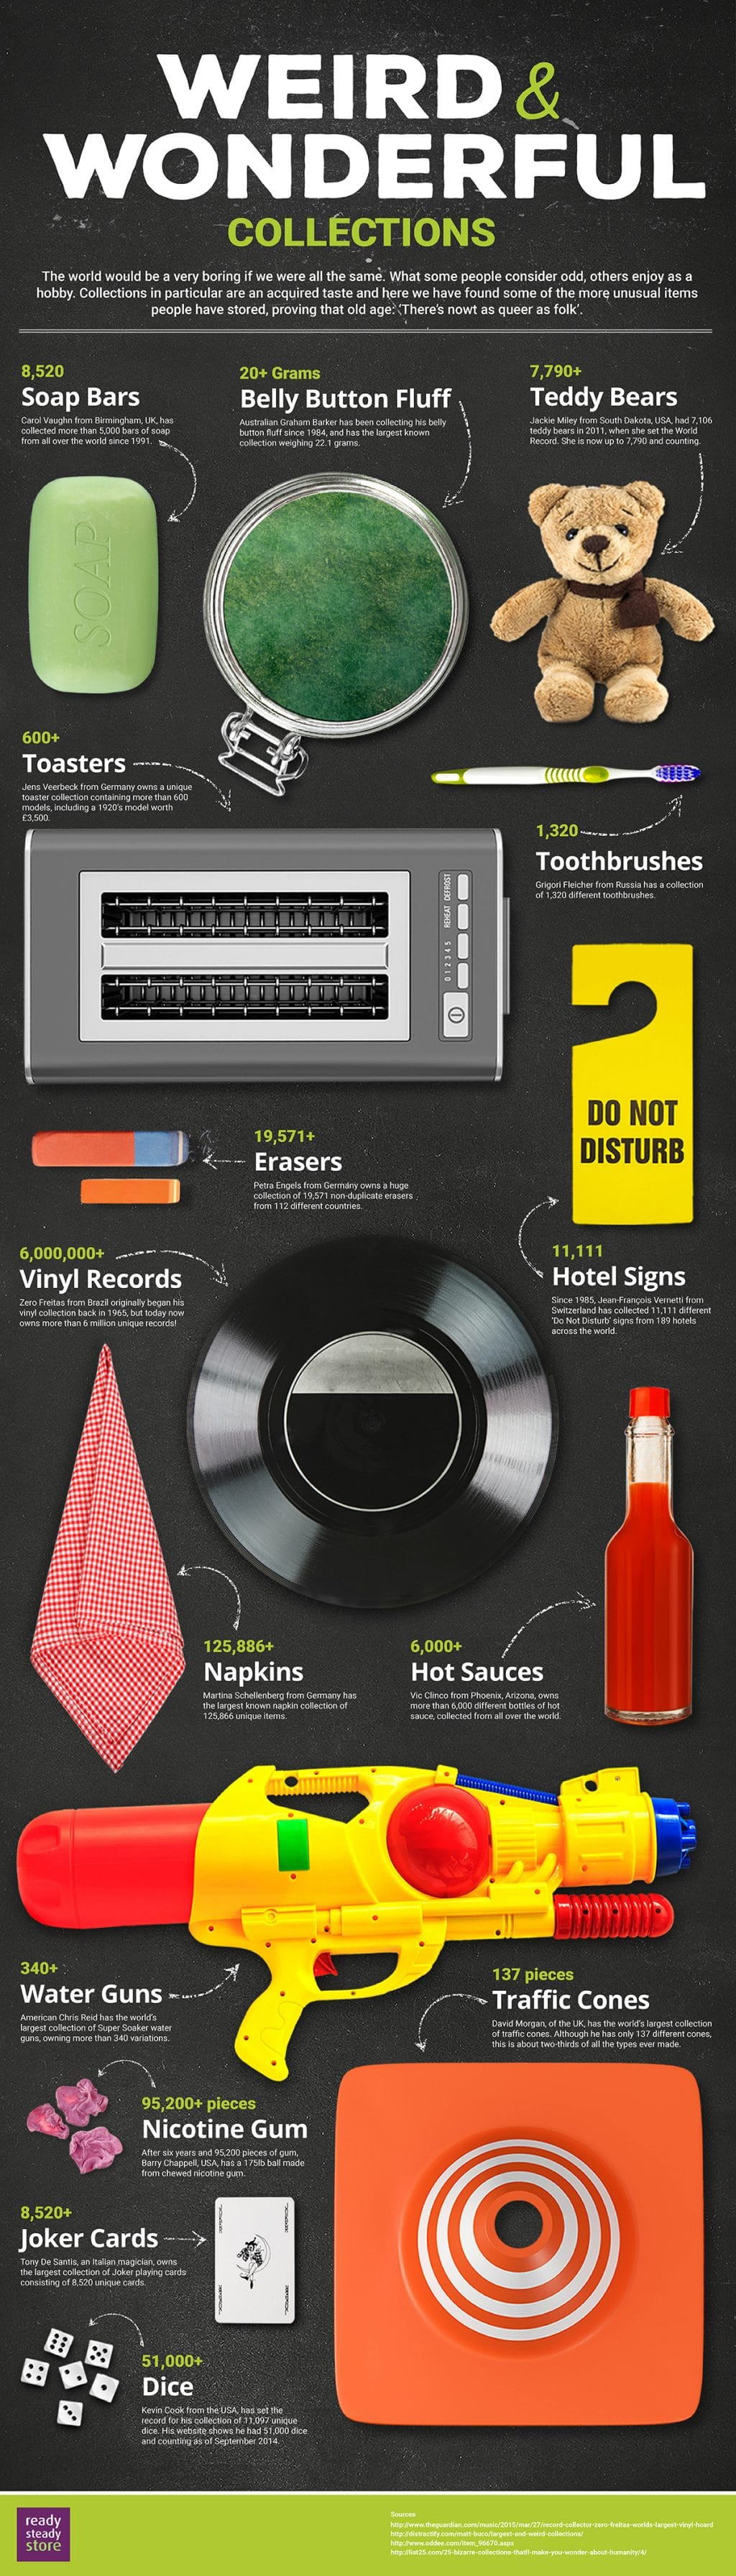 Weird and wonderful collection infographic